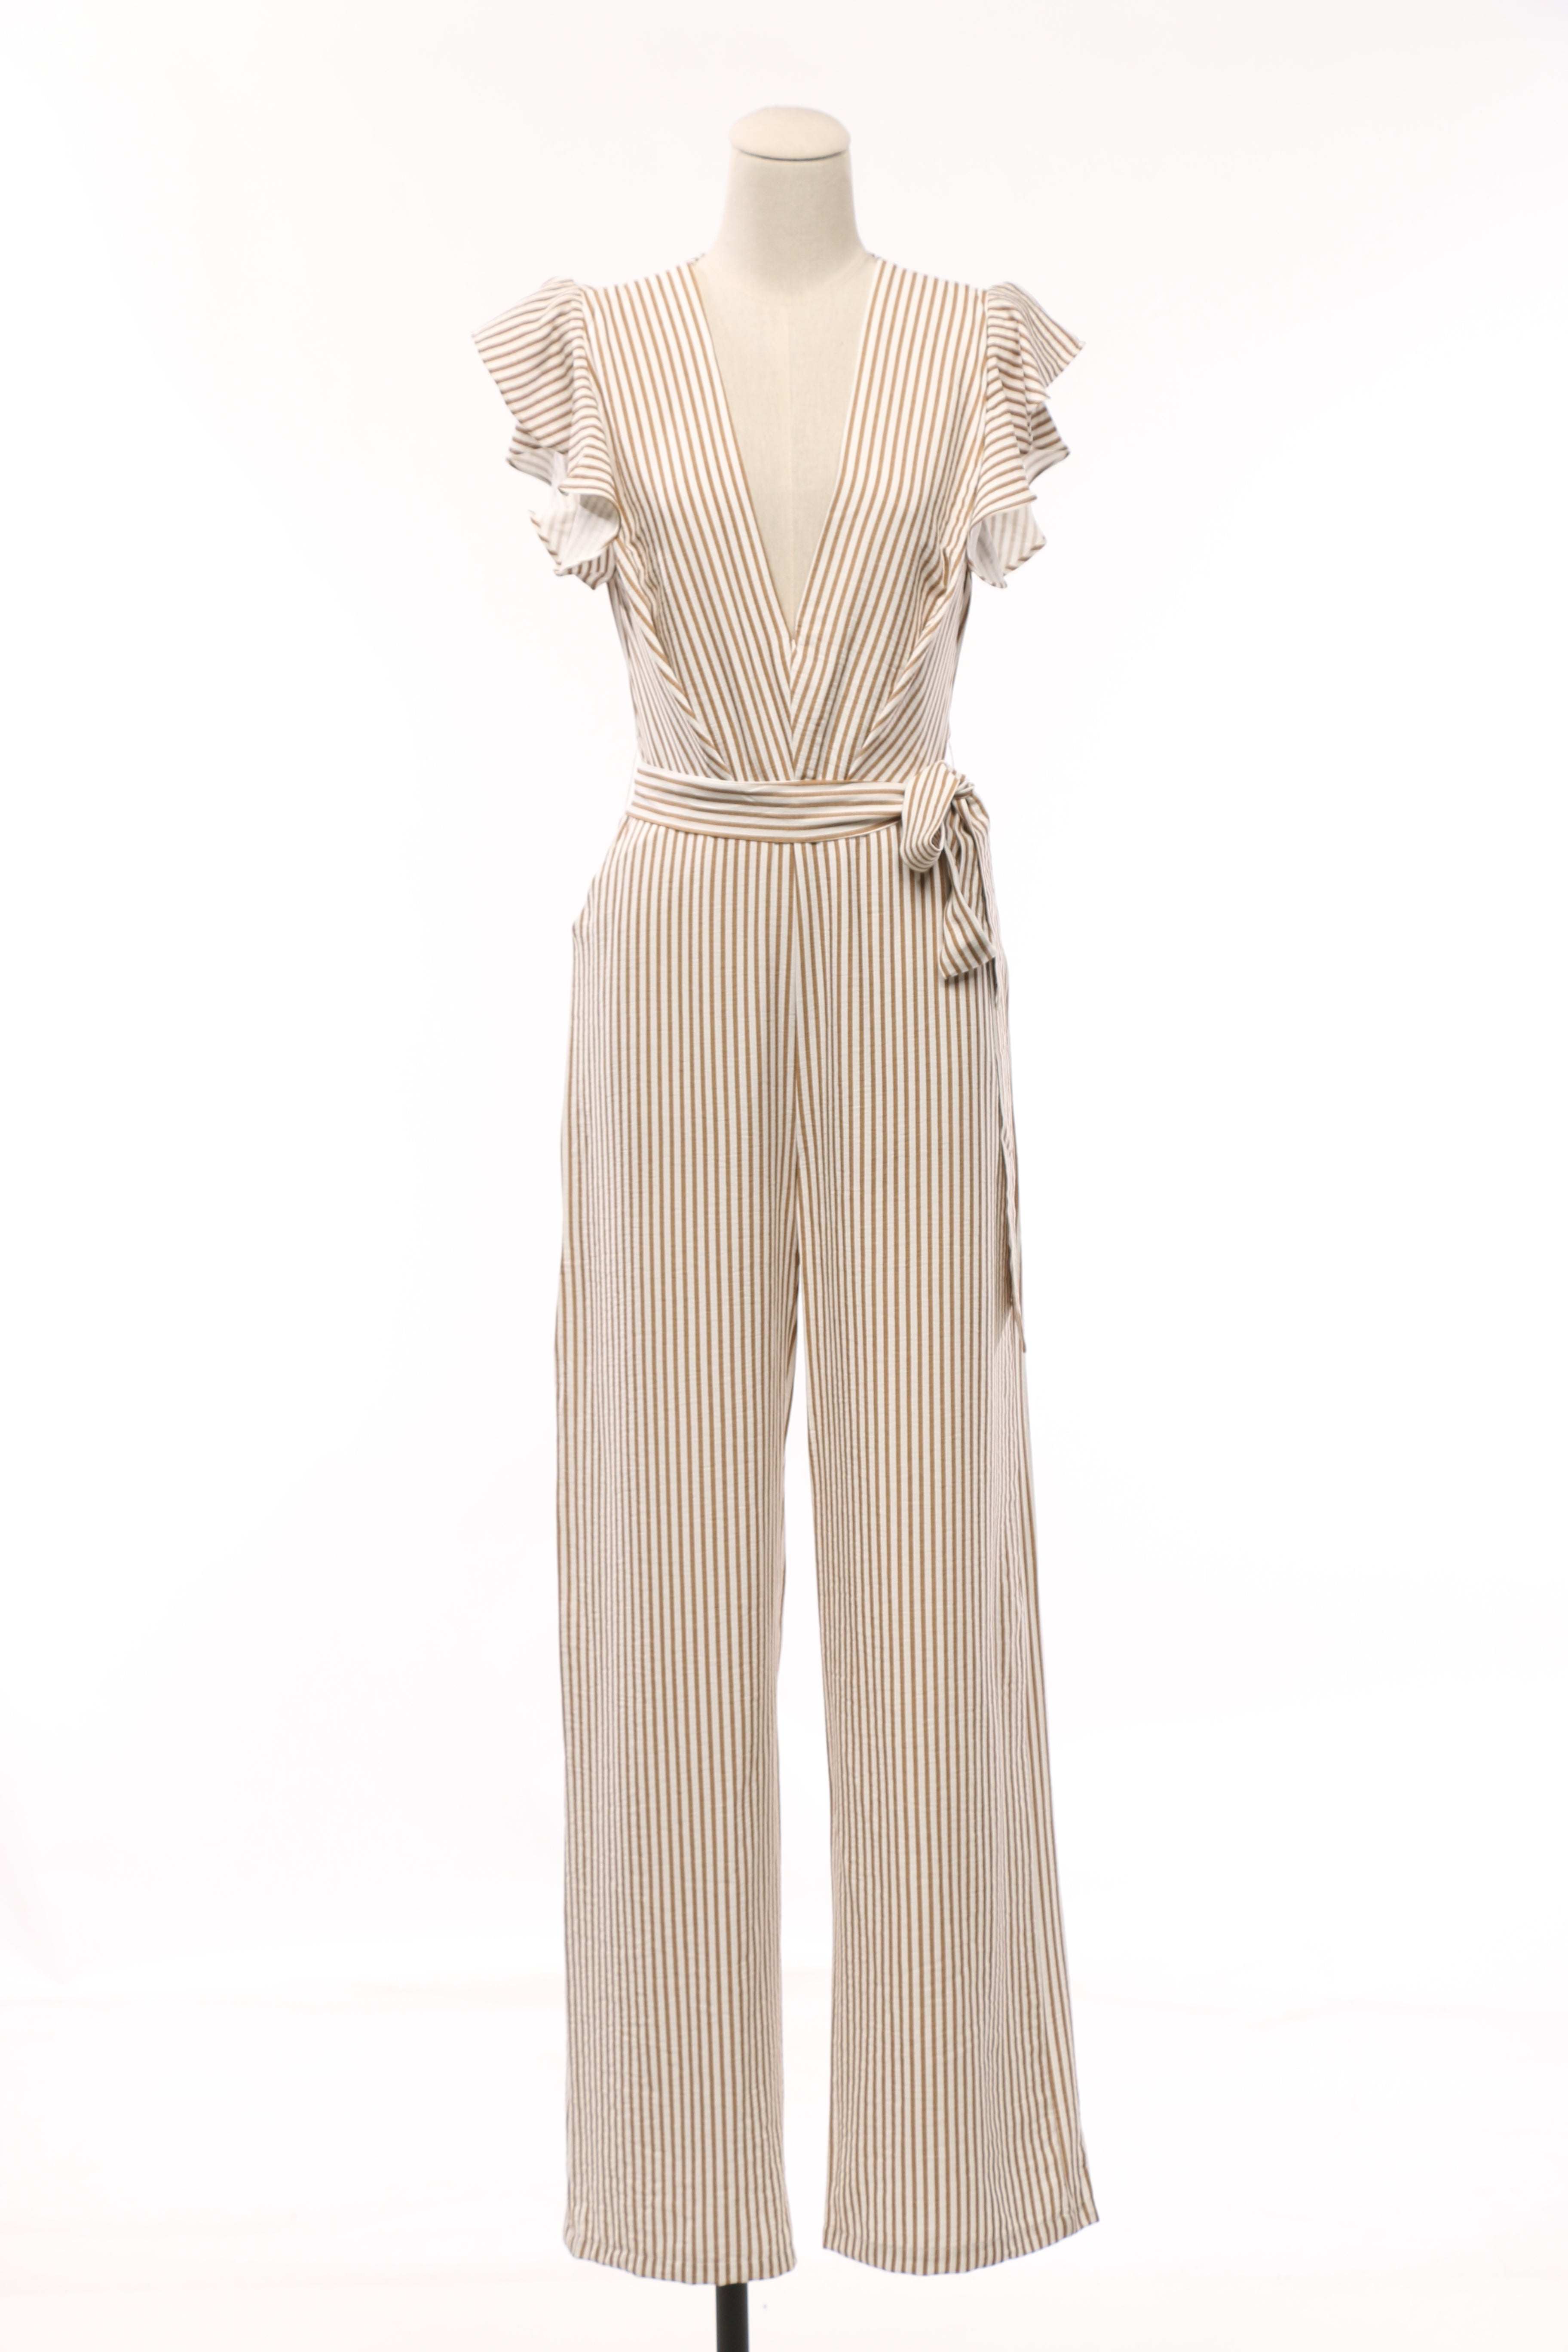 Breezin Striped Jumpsuit - OWLXFISH